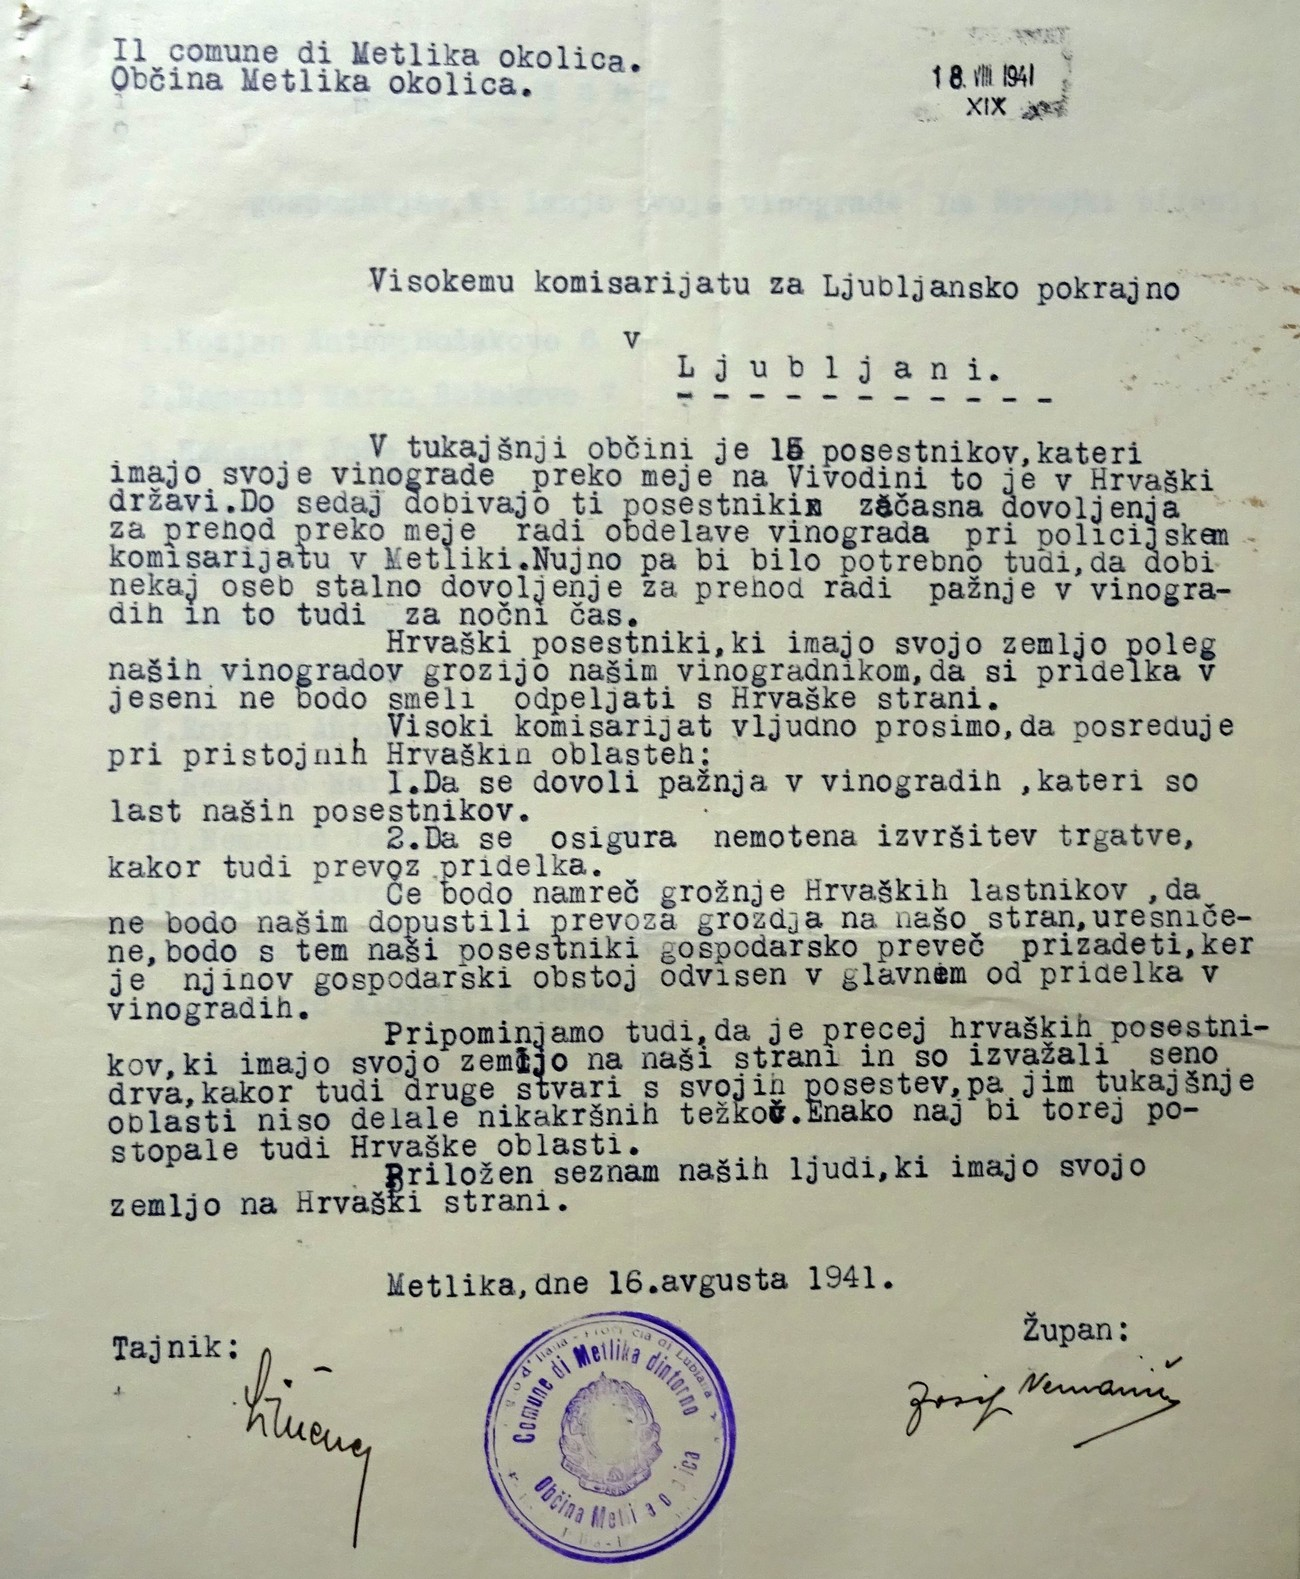 The border soon began causing many problems, including economic ones. A letter from the Municipality of Metlika, dated 16 August 1941, to the High Commissariat of the Province of Ljubljana in Ljubljana reads as follows: »The Croatian landowners who own land next to our vineyards are threatening our winegrowers that they won't be allowed to take their crop from the Croatian side in autumn. /…/ Let us mention that there are quite a few Croatian landowners who own land on our side and who have exported hay, wood and other items from their properties and were never hassled by the local authorities. The Croatian authorities should do the same.« Archives of the RS.